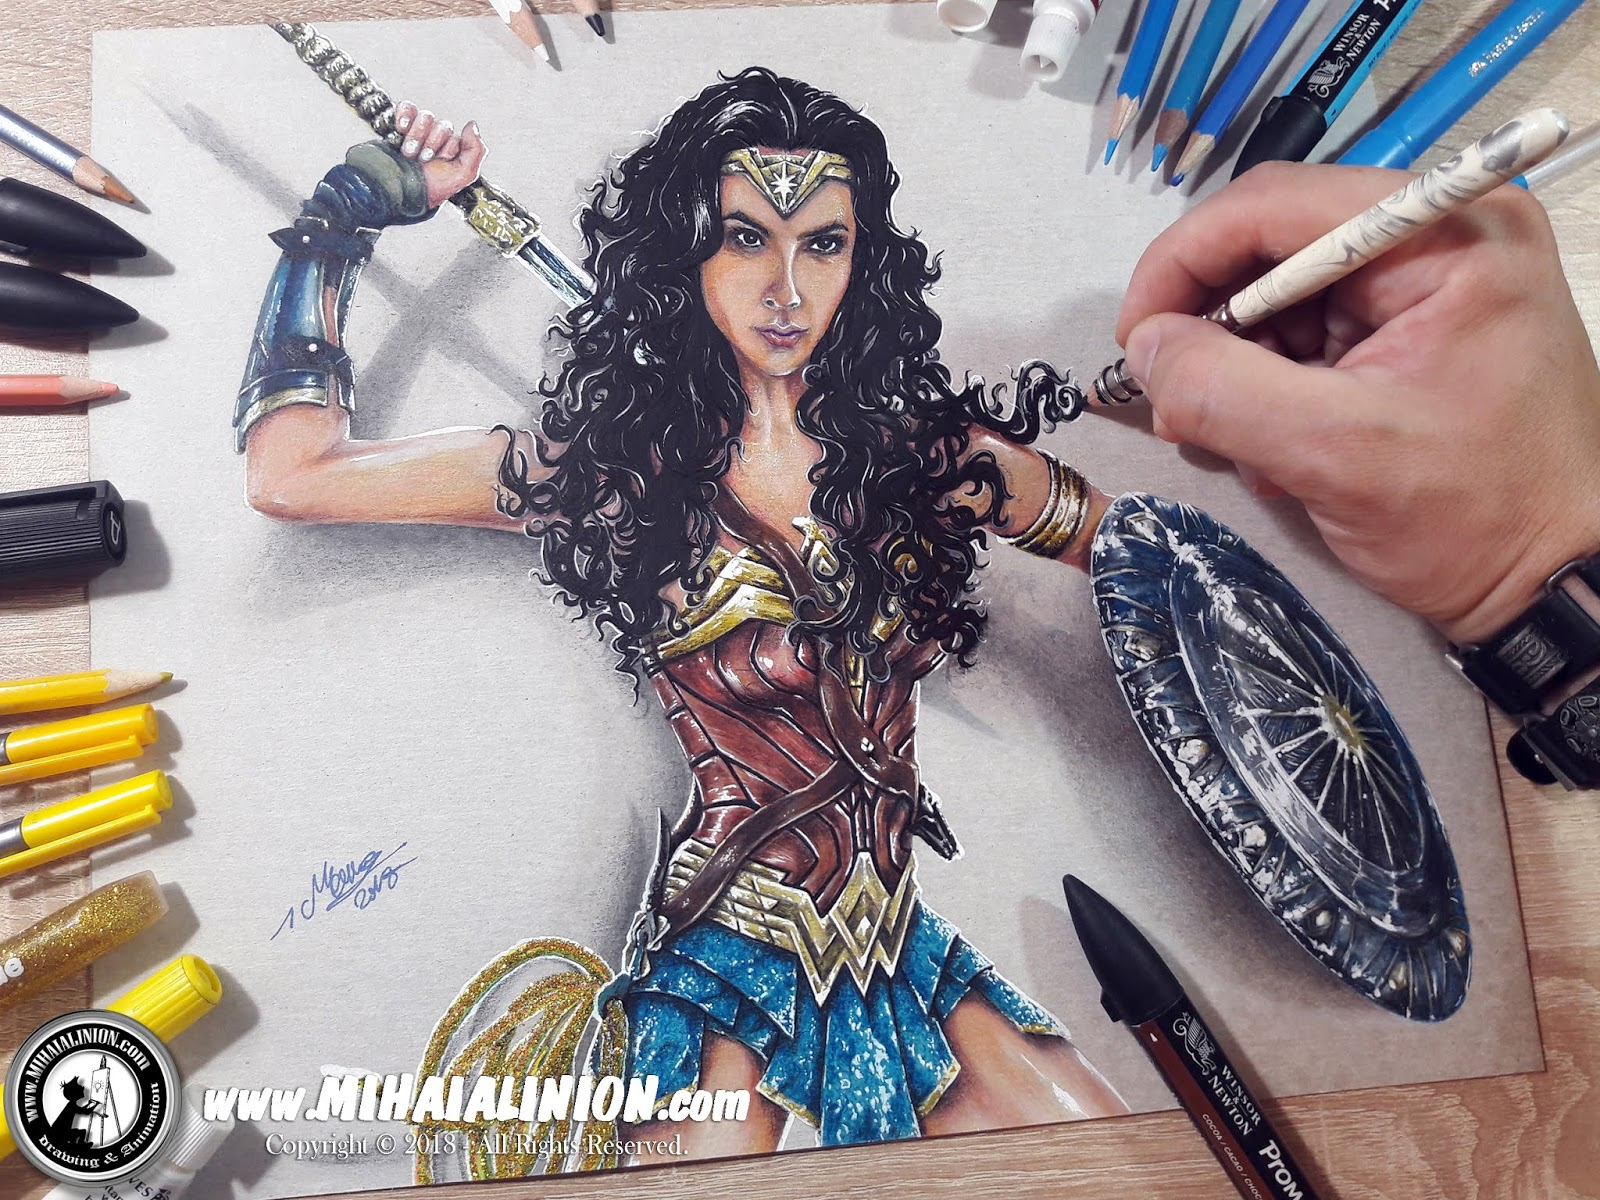 Drawing Wonder Woman, Drawing Gal Gadot, Drawing Diana Prince, Wonder Woman, Wonder Woman Series, Justice League, Wonder Woman The Movie, DC Wonder Woman, Gal Gadot Movie, Wonder Woman ComicBook, How to draw Wonder Woman, Wonder Woman pencil drawing, William Moulton Marston, Harry G. Peter, Supervillain, DC Heroes, Amazonian, Olympian, Steve Trevor, Themyscira, MAI Comics, Mihai Alin Ion, art by mihai alin ion, Drawing Marvel, Drawing DC, Marvel versus DC, Marvel Comics, DC Comics, Gerry Conway, how to draw, artselfie, drawing ideas, free drawing lessons, drawing tutorial, art, dessin, disegno, dibujo, drawing Marvel heroes, drawing DC heroes, drawing, illustration, painting, design, realistic 3d art, coloured pencils, www.mihaialinion.com, 2018, pencil drawing, tempera, acrilics paint, marker, gouache painting, mixed media, comics, comic book, caricature, portrait, cum sa desenezi, caricaturi mihai alin ion, caricaturi si portrete  la comanda, eveniment caricaturi, caricaturi la nunta, caricaturi la botez, caricaturi la majorat, desene pe pereti, desene pentru copii, ilustratie carte, benzi desenate, caricaturi, portrete, comanda caricaturi